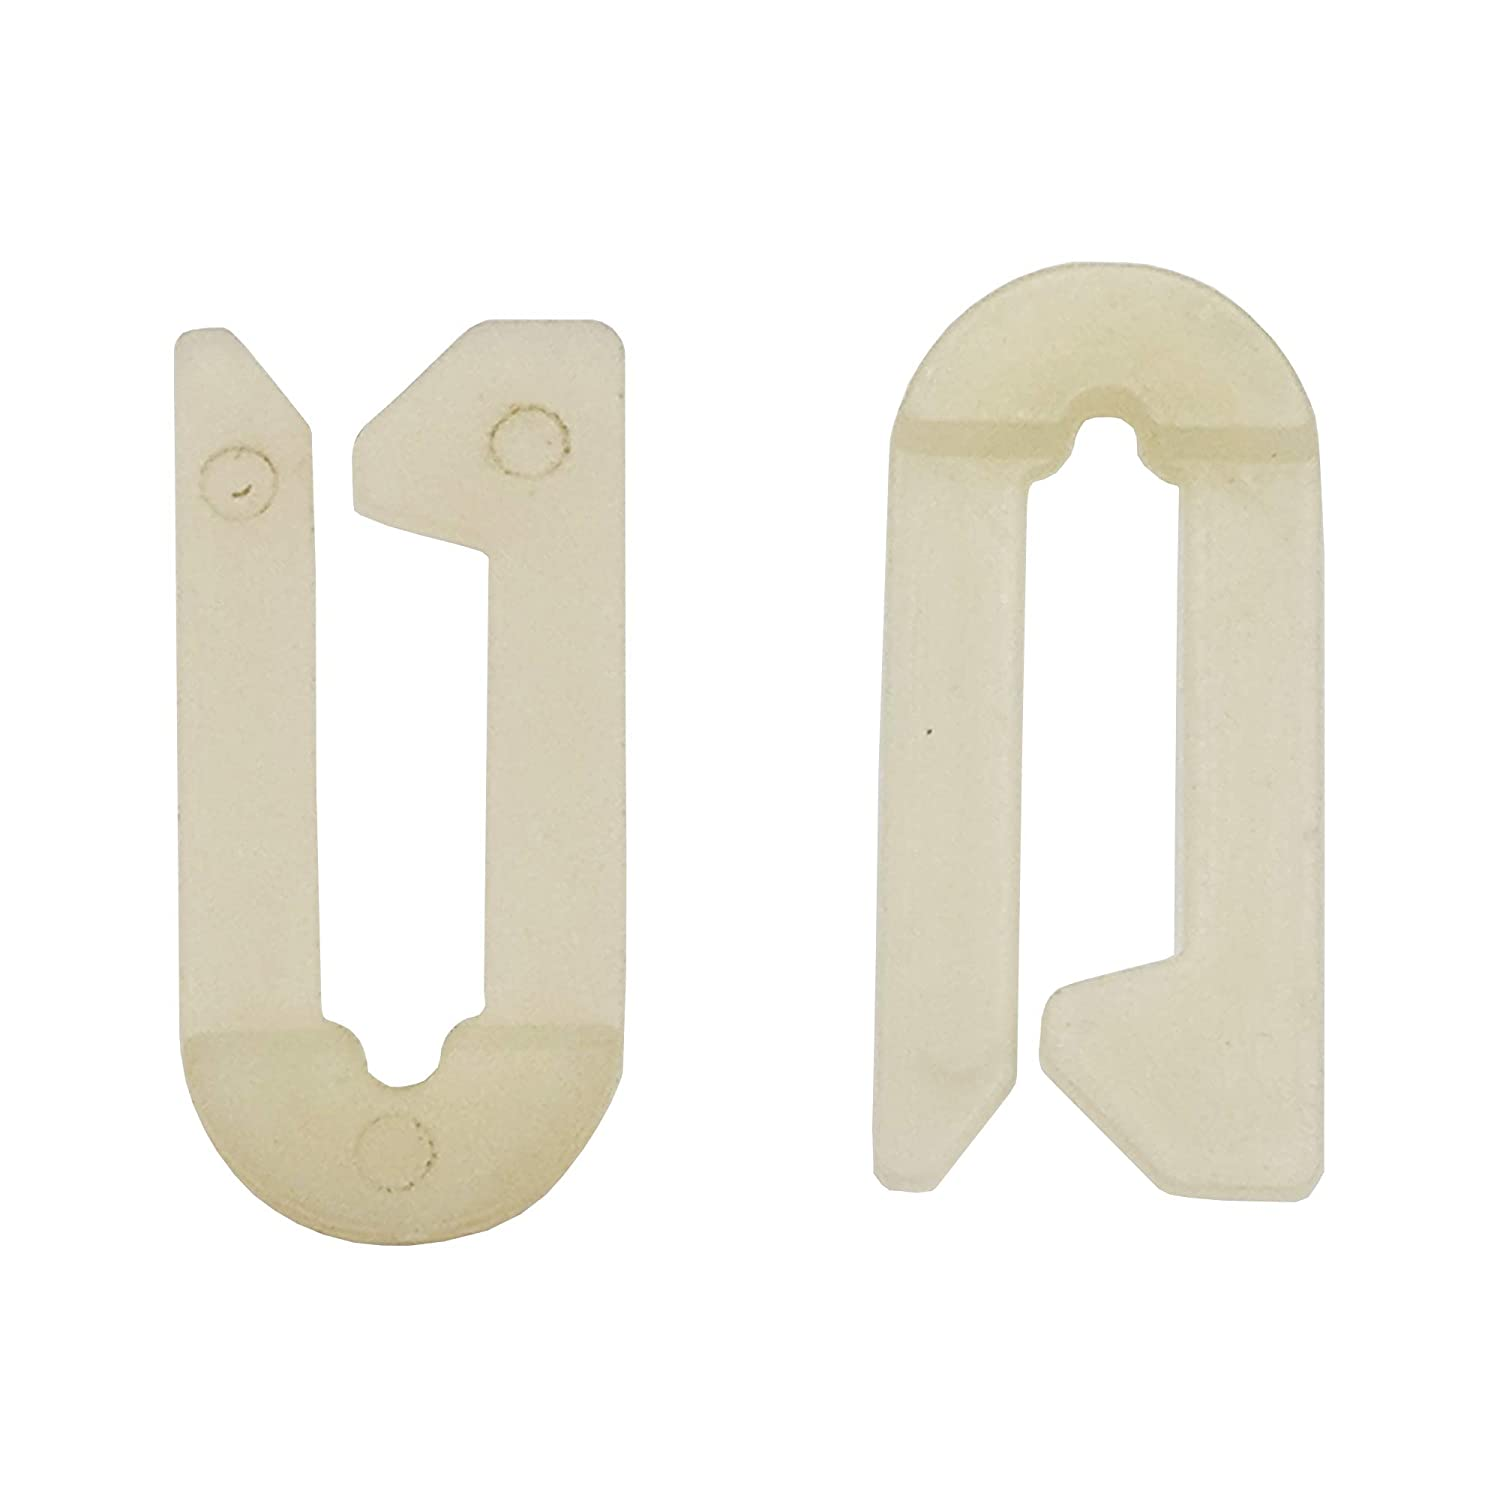 Supplying Demand WH1X2117 Washer Dryer Knob Clip 2 Pack Fits WH01X2117